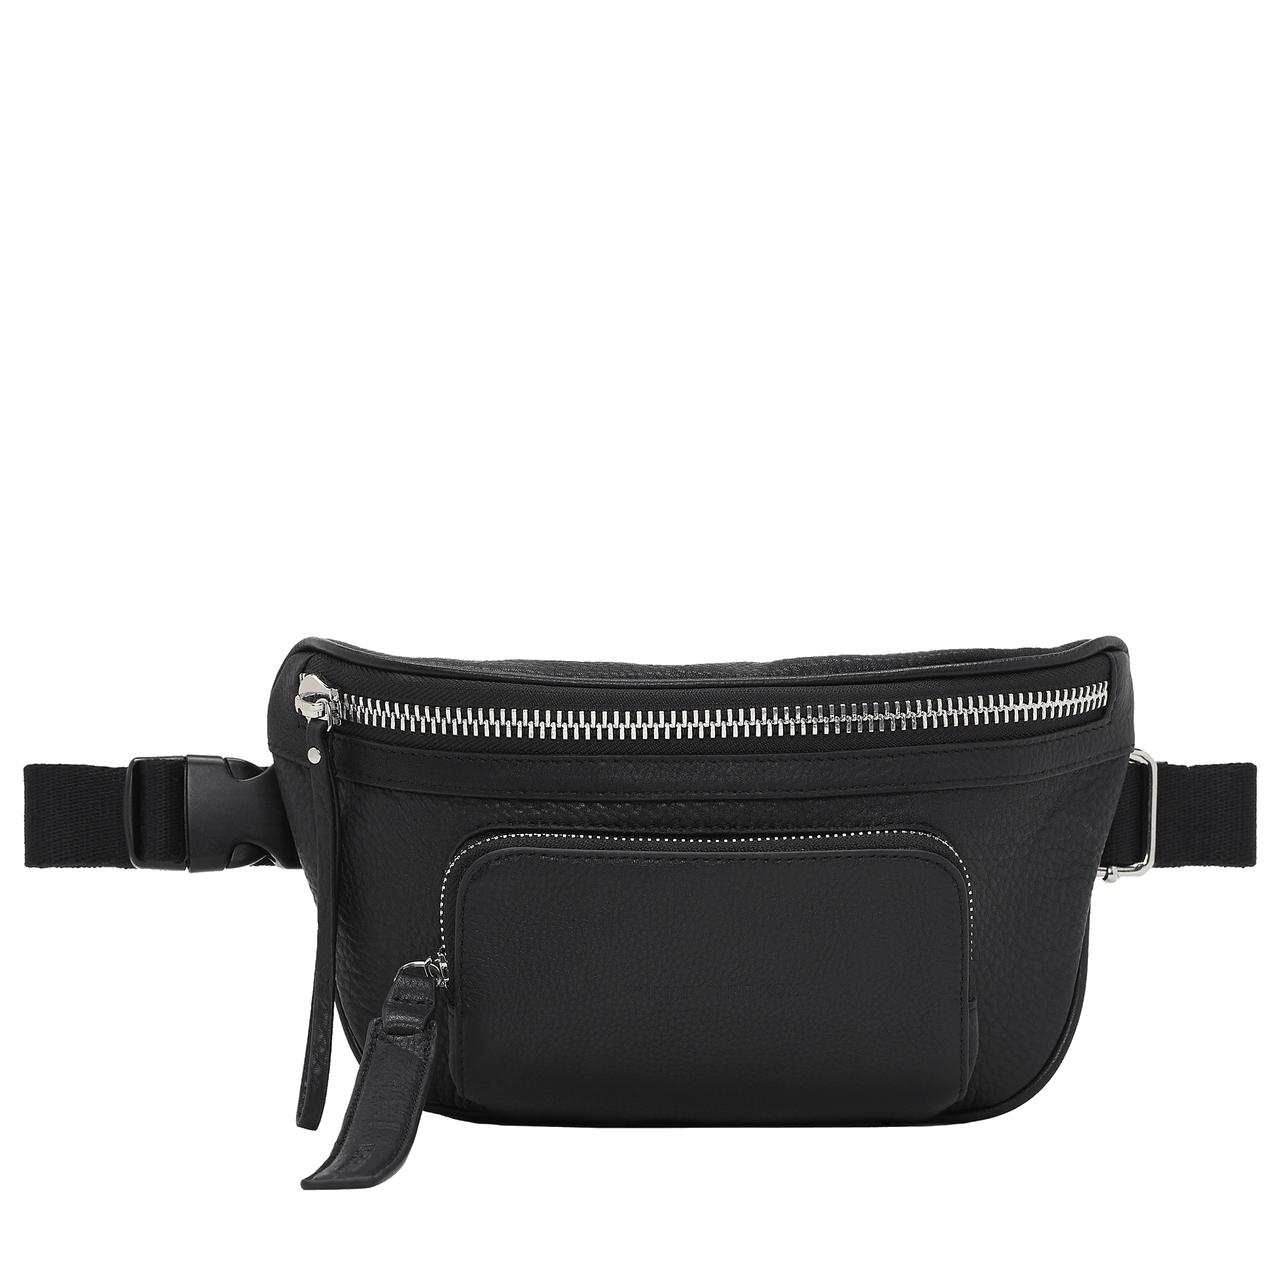 ETTA SLING BELT BAG - BLACK